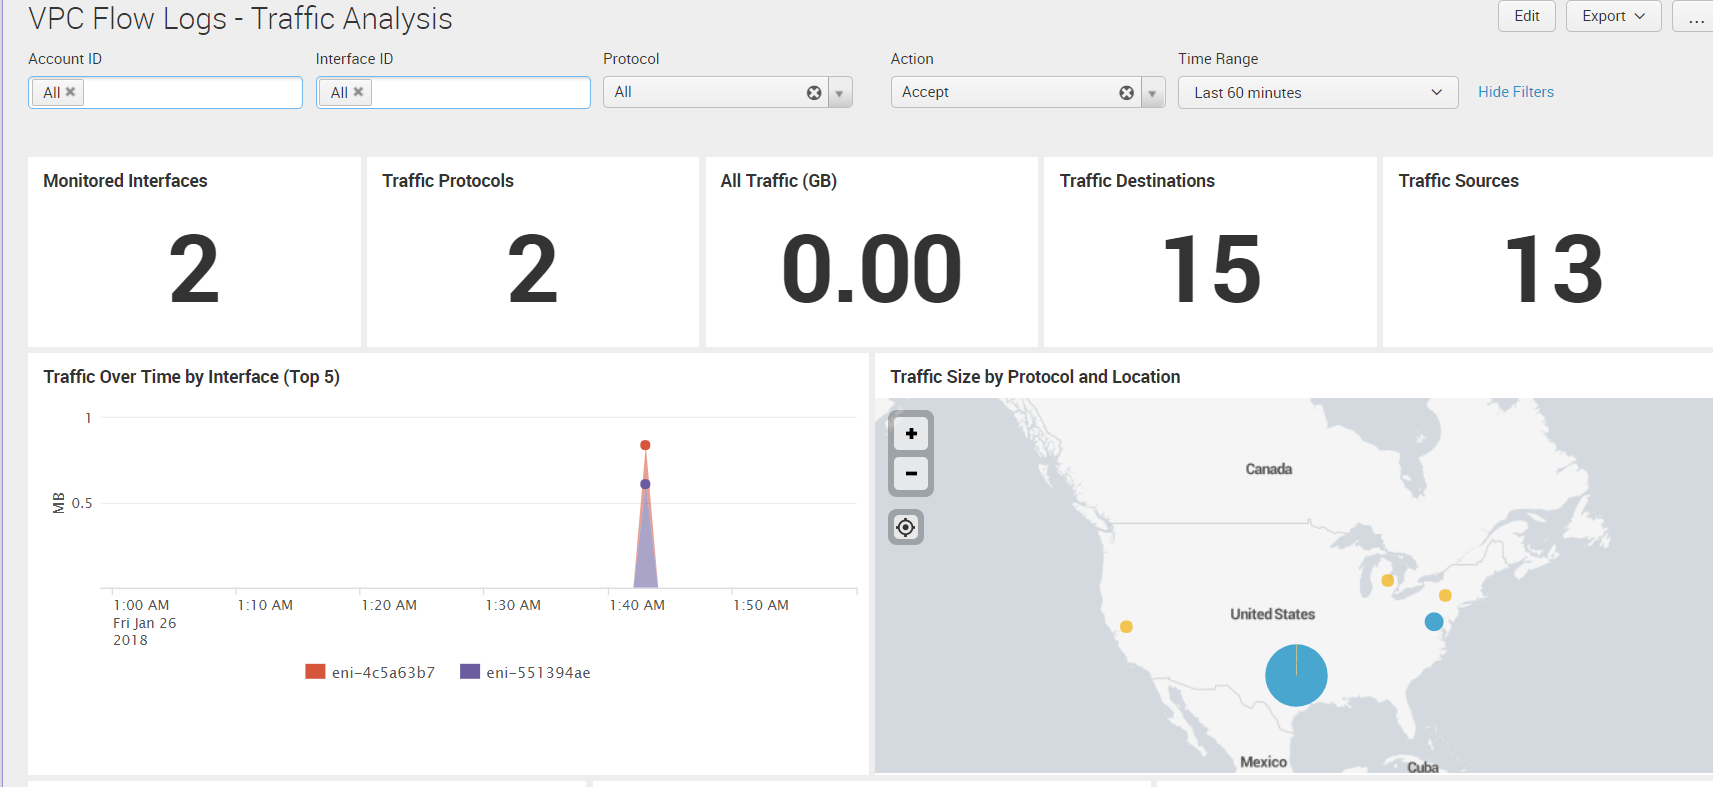 VPC flow logs - traffic analysis